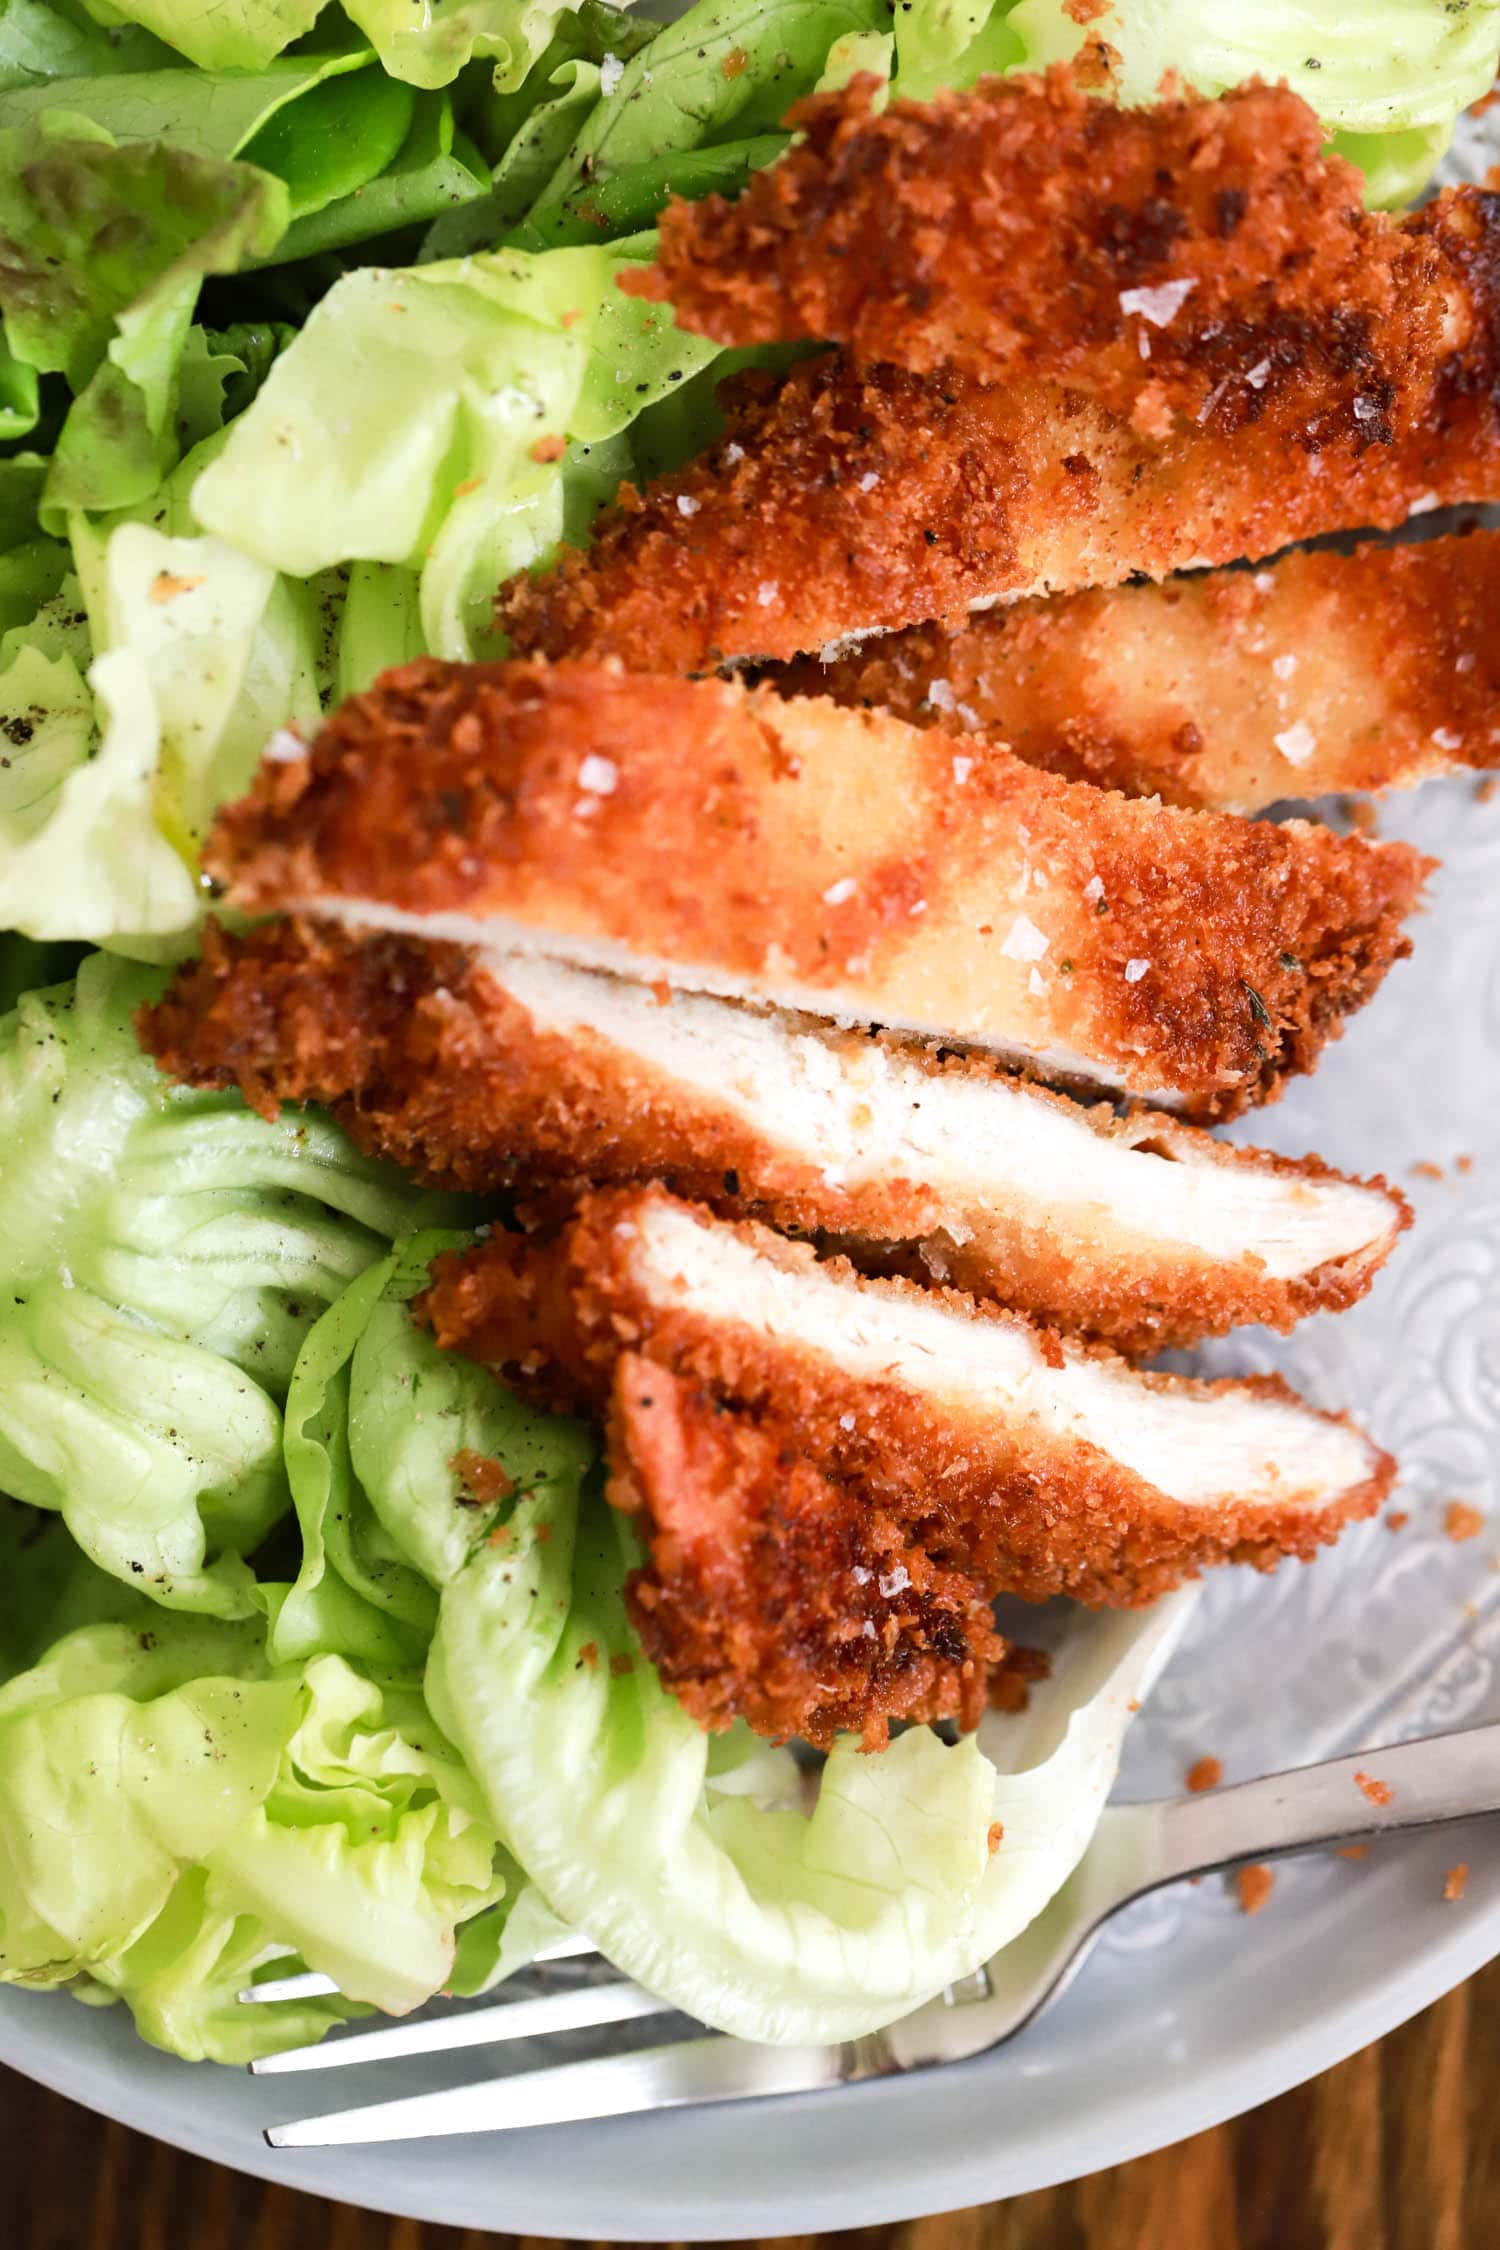 sliced baked chicken cutlets